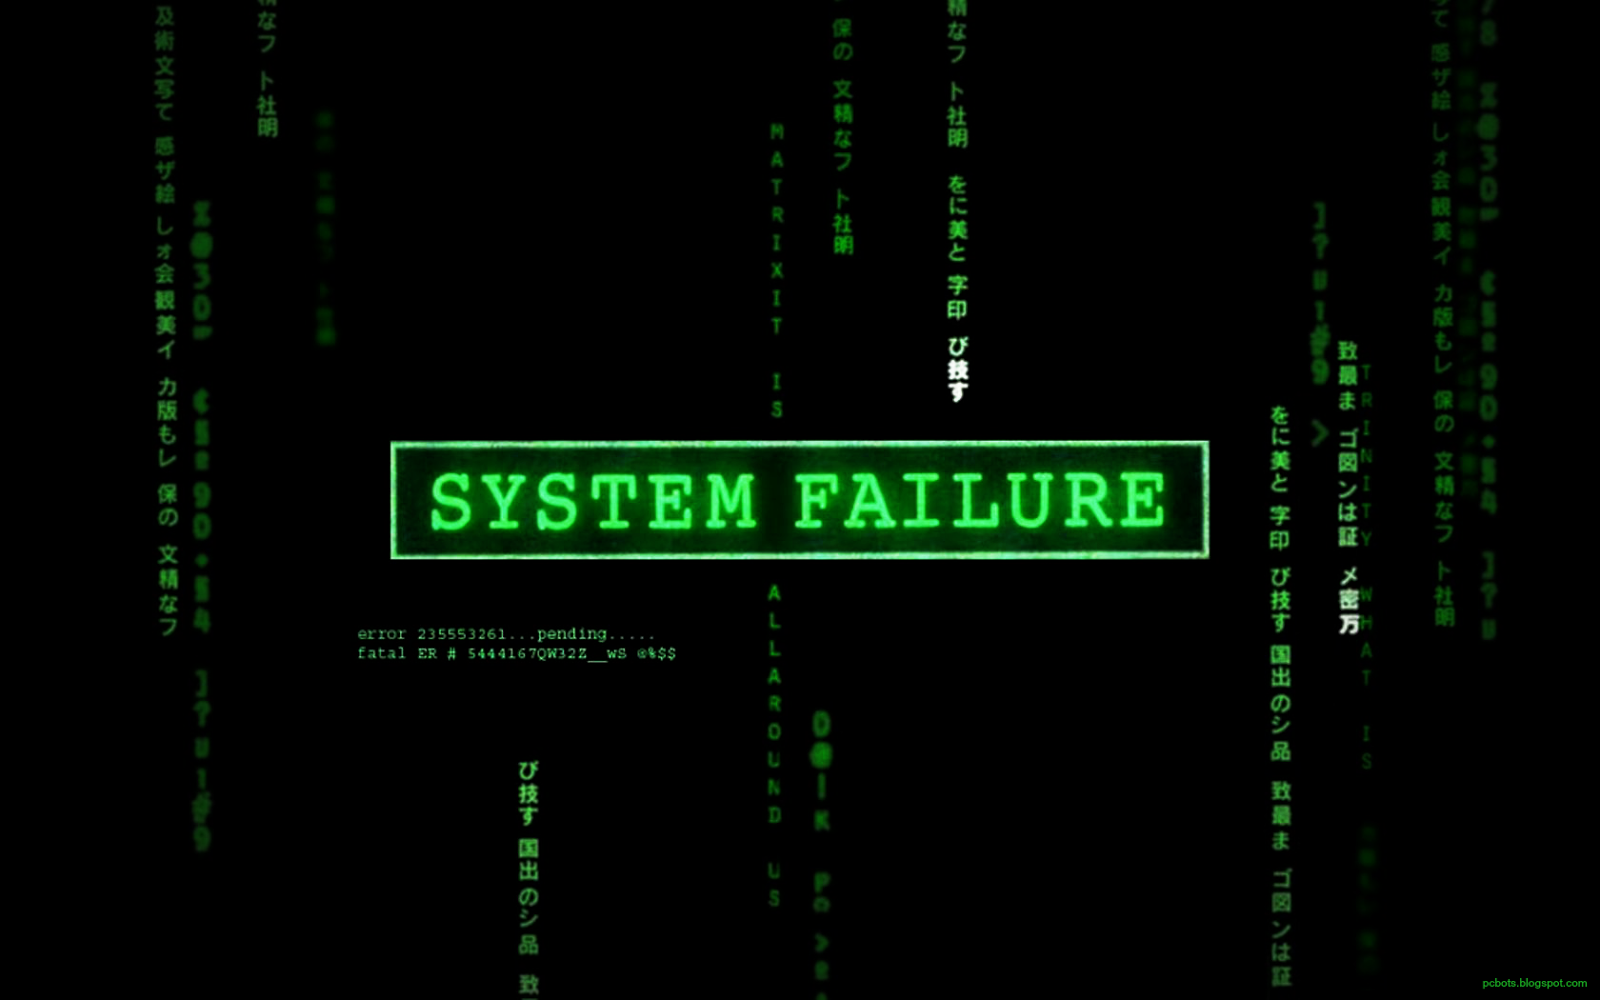 System failure green hackers Wallpaper with matrix background 1600x1000